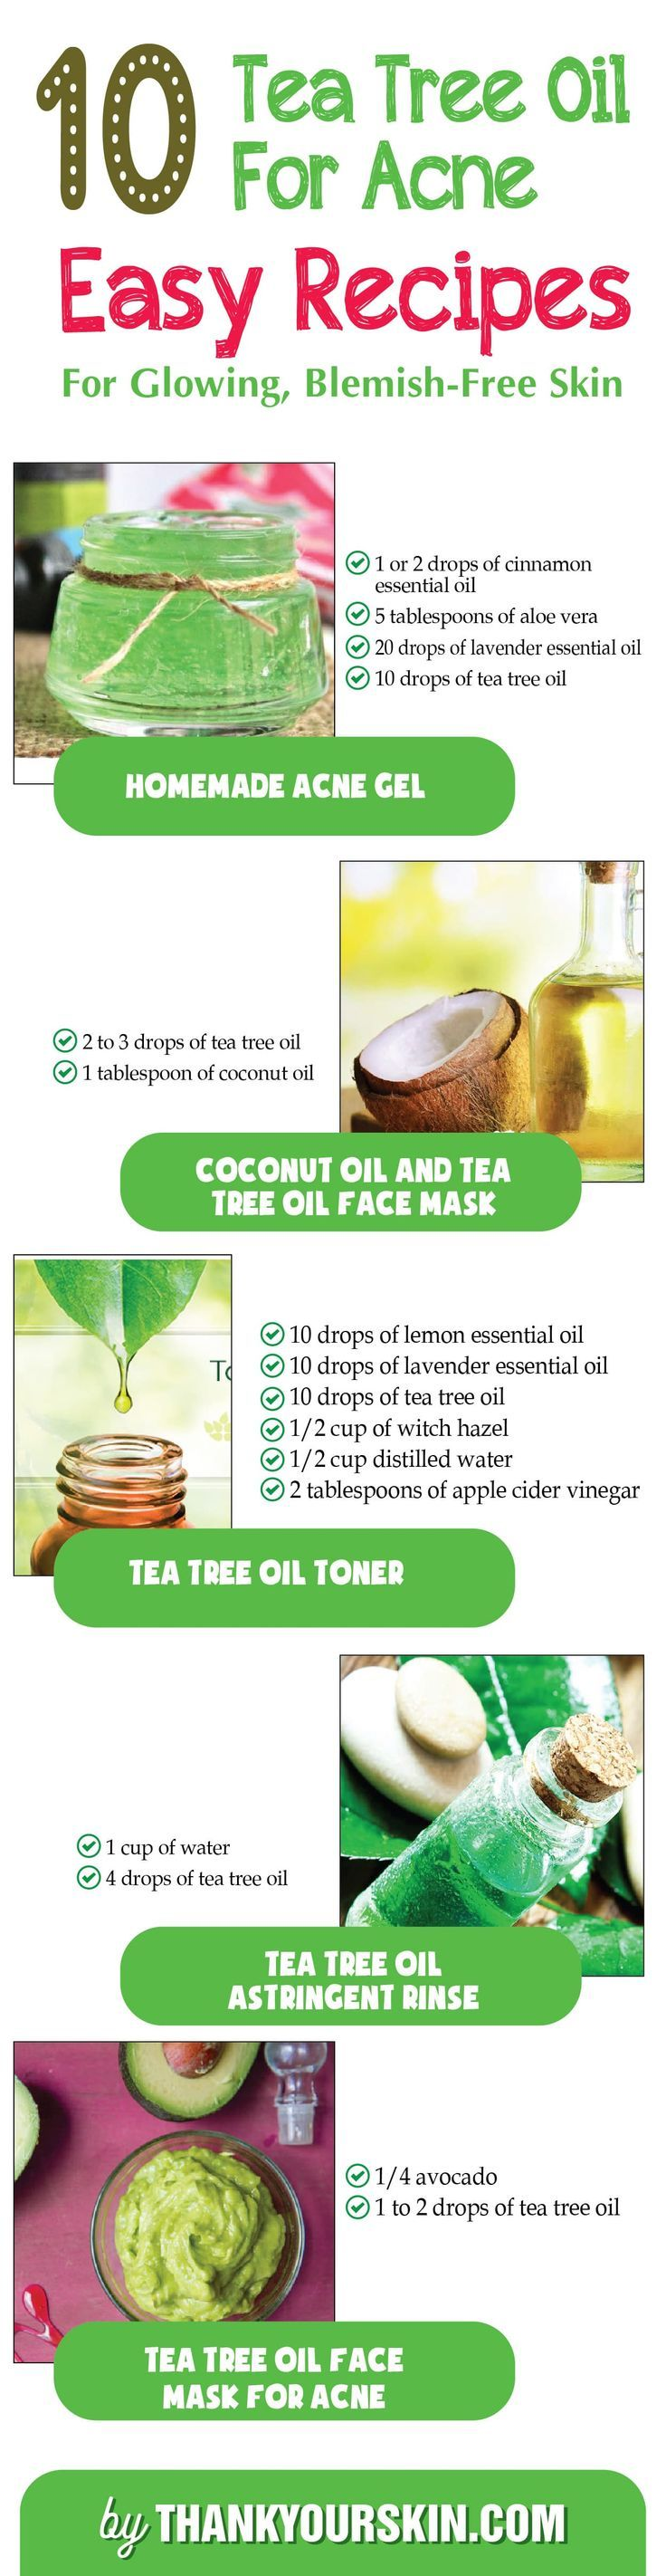 DIY Tea tree oil for Acne - Easy Homemade Recipes Face mask, TOner, cream for Getting rid of pimples fast and overnight #TeaTreeOilForAcne #DIYacne #ThankYourSkin